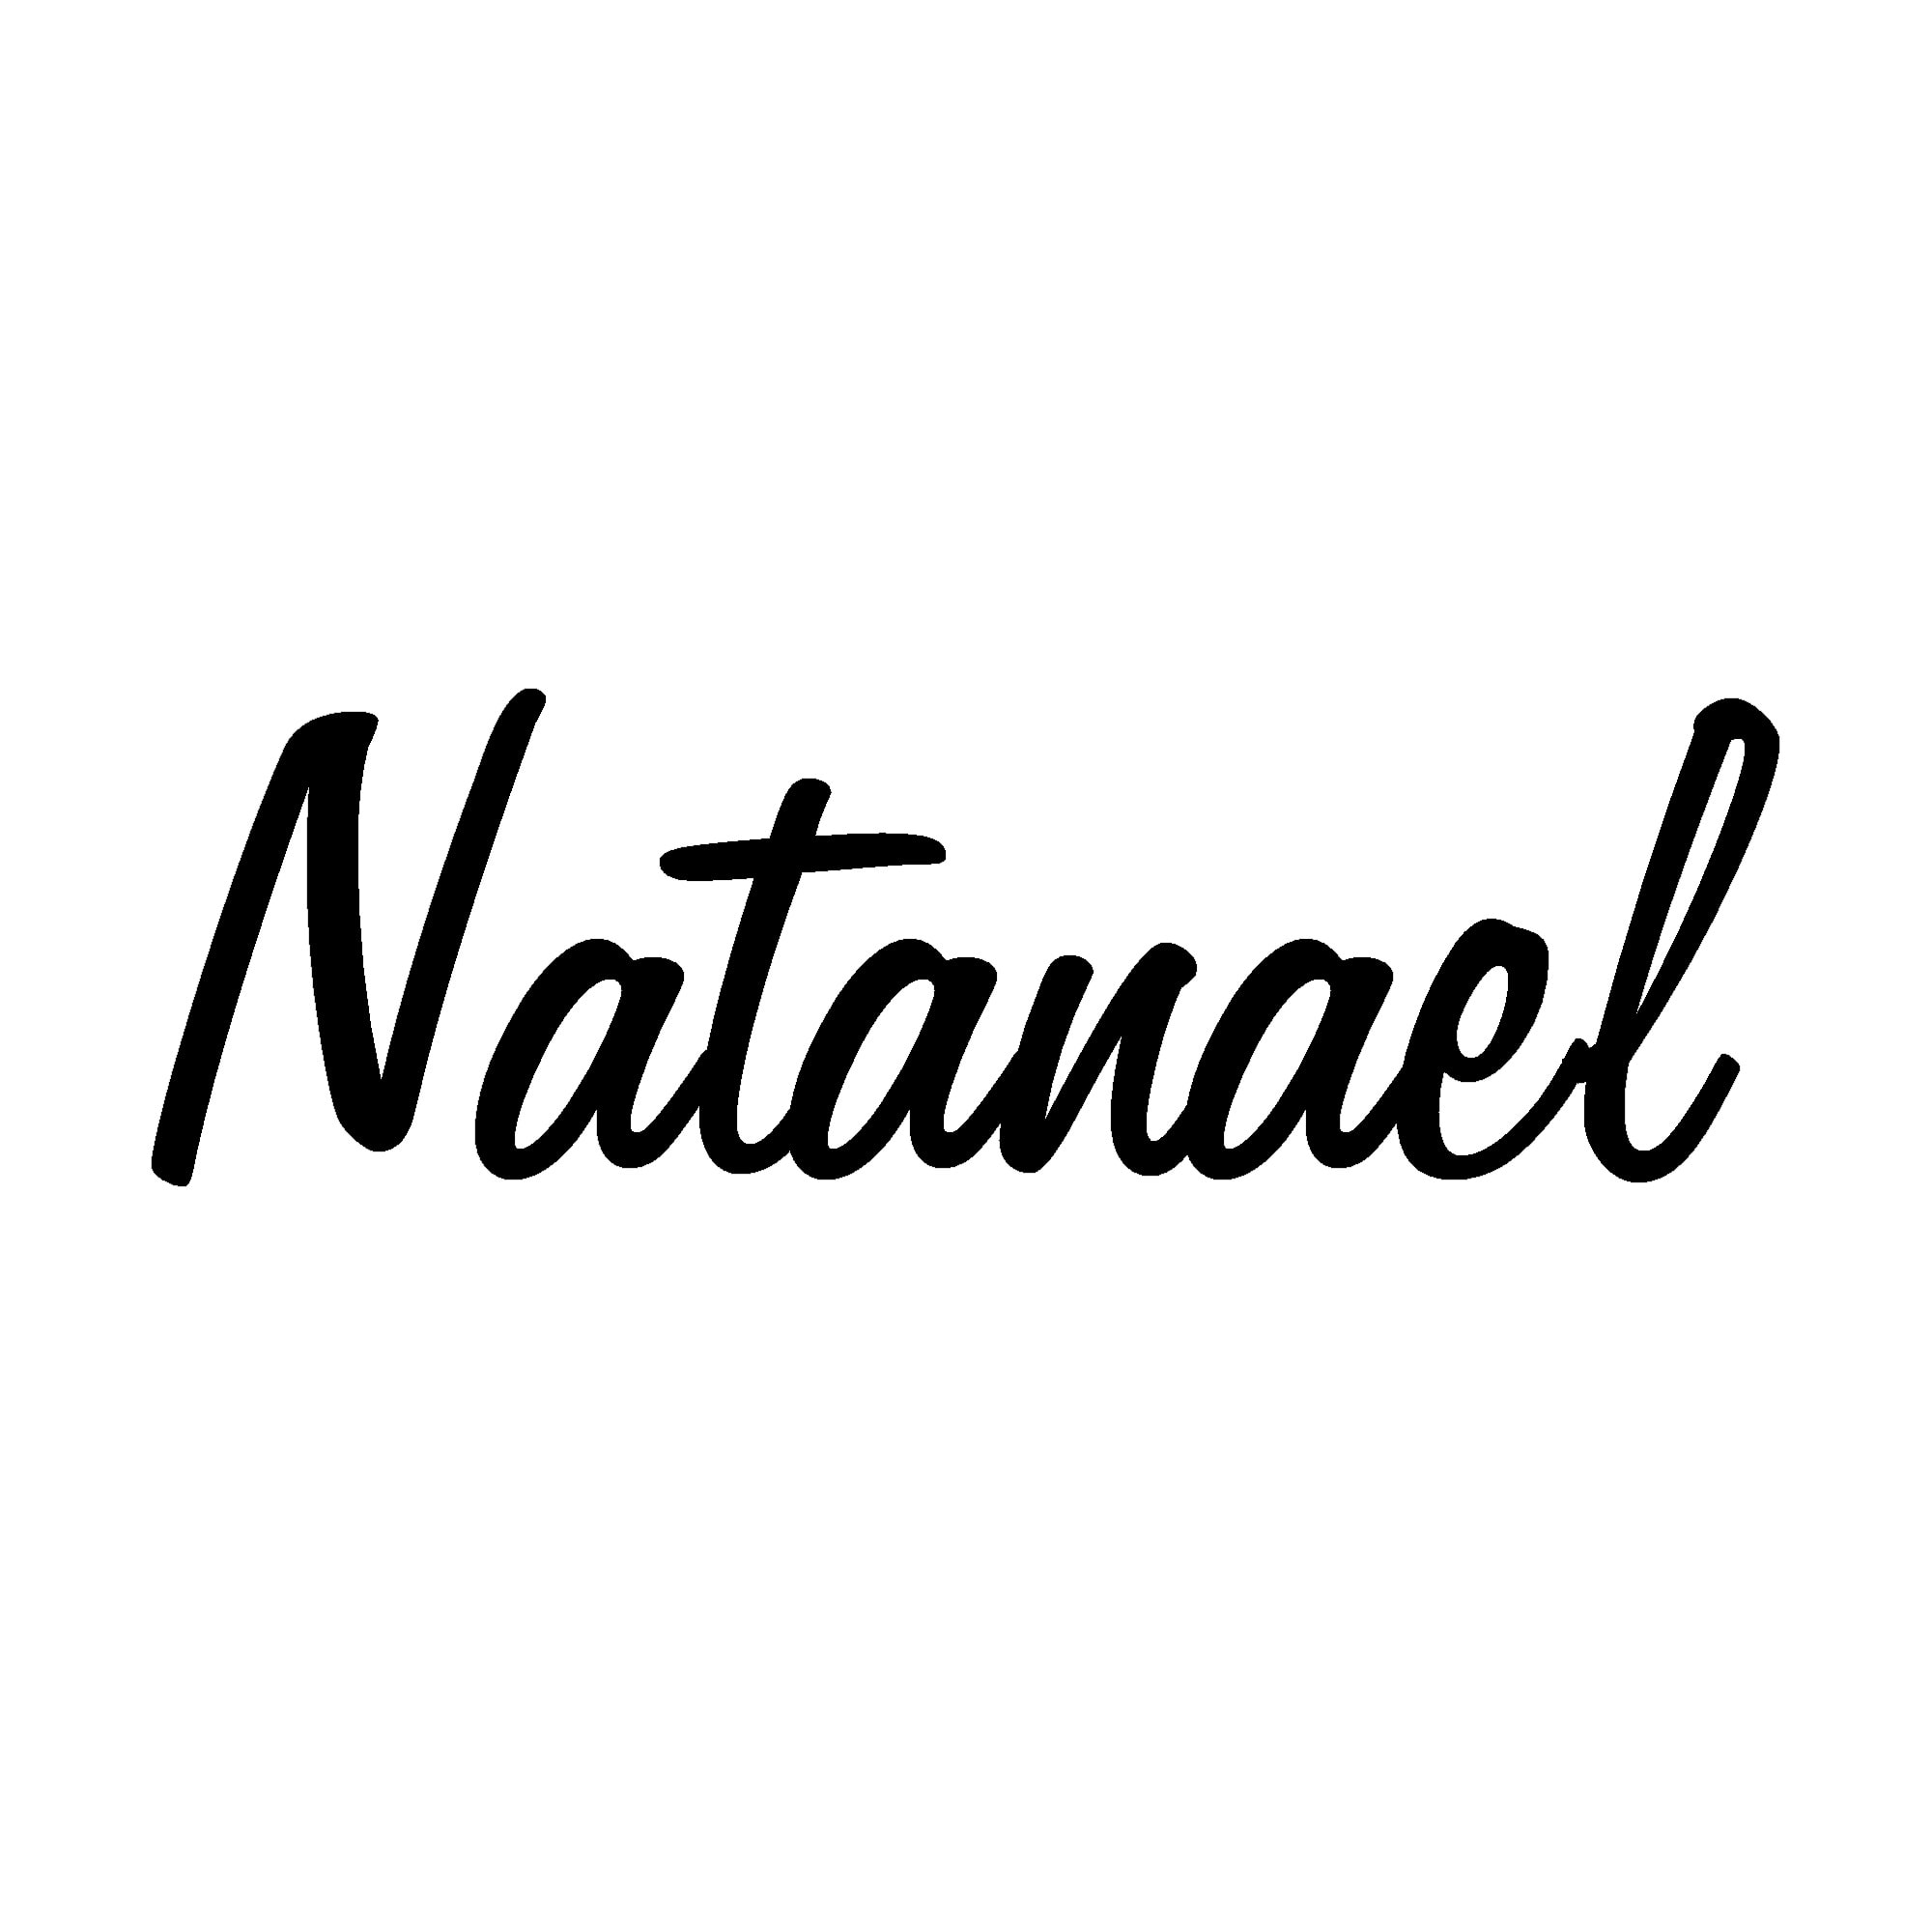 Avatar of user Natanael Melchor